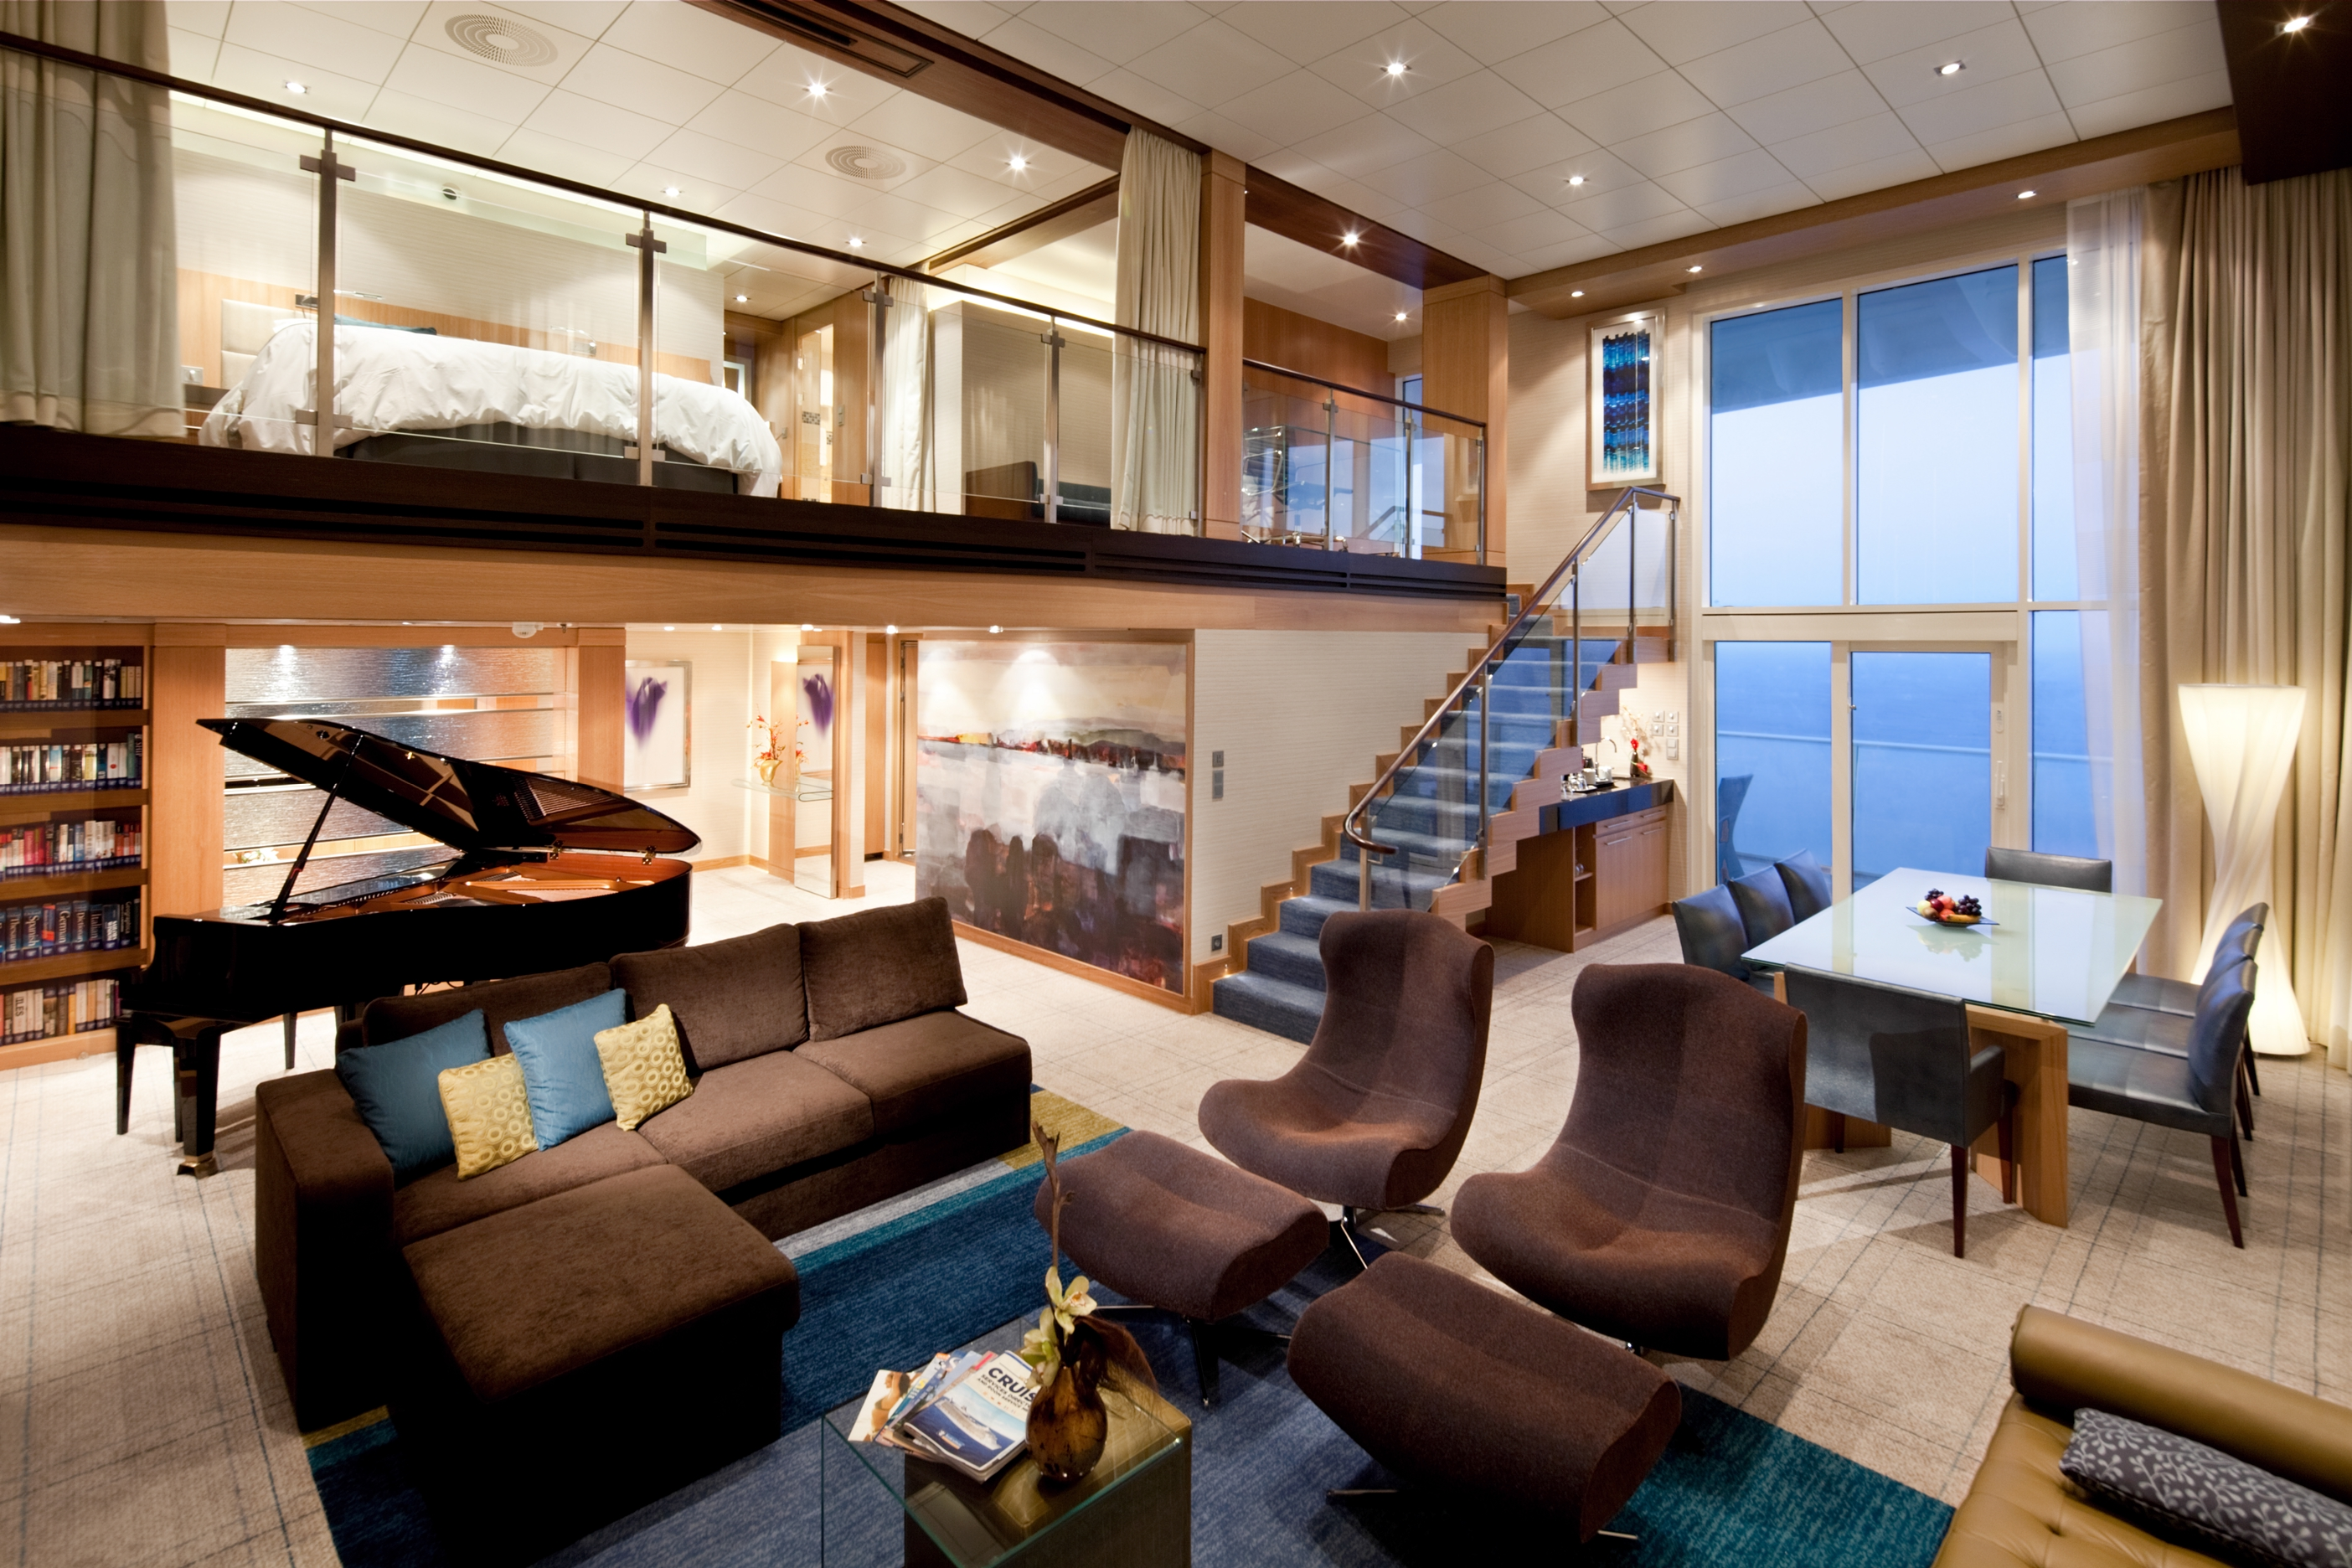 Royal Caribbean International Oasis of the seas accommodation Royal loft room.jpg